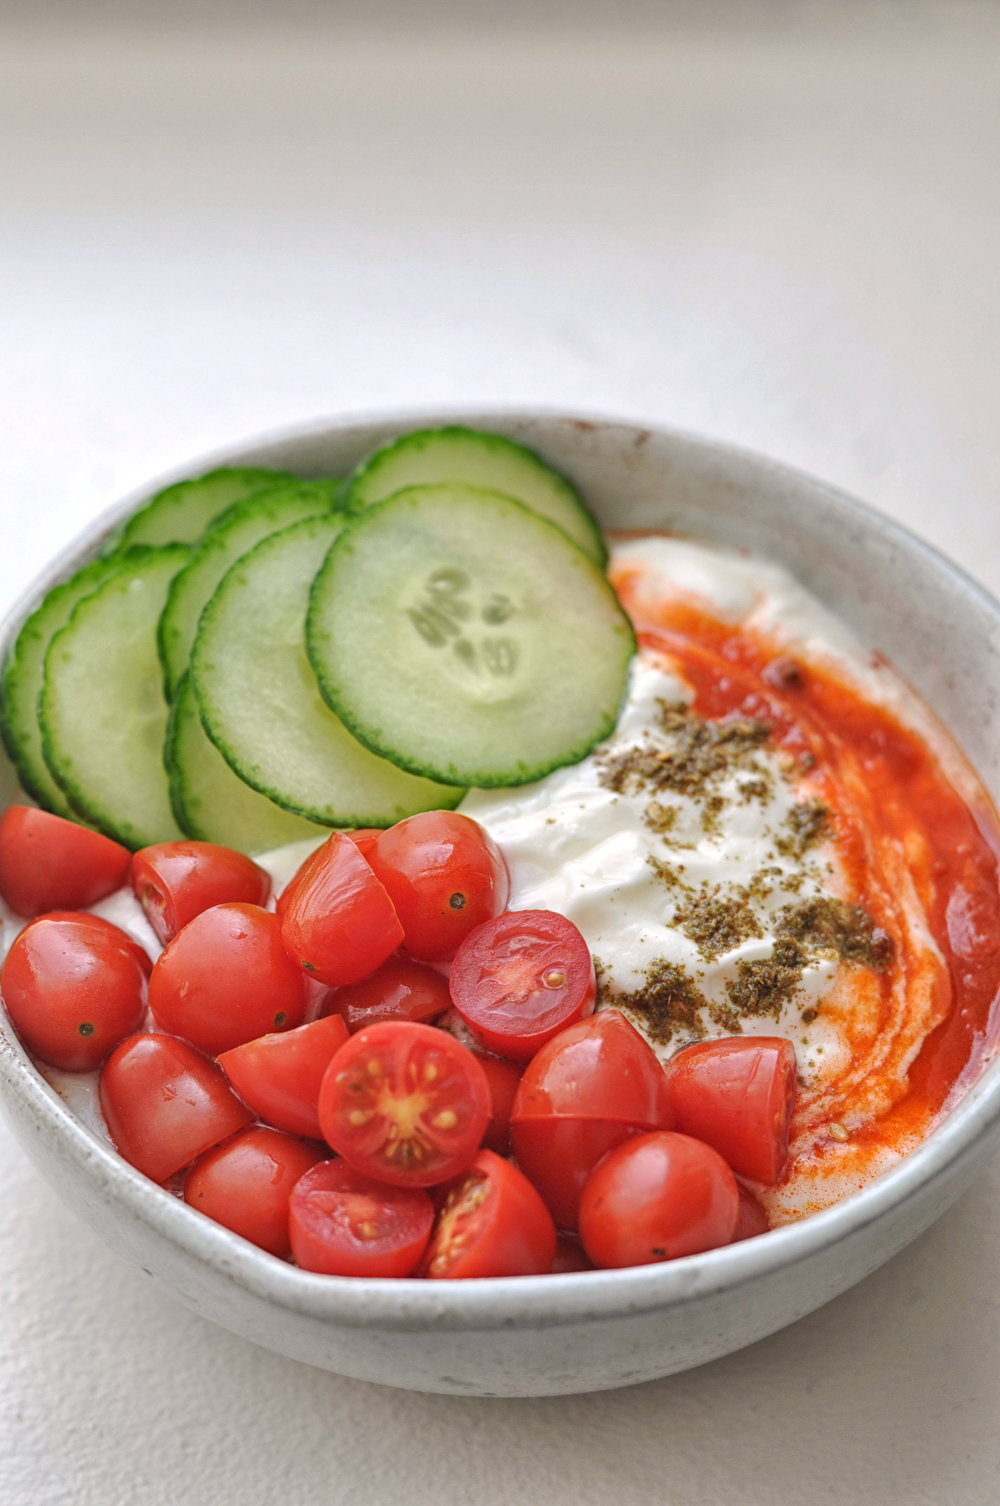 Savory Yogurt with harissa, za'atar, grape tomatoes, and cucumbers - a healthy way to start the day. | Shiny Happy Bright